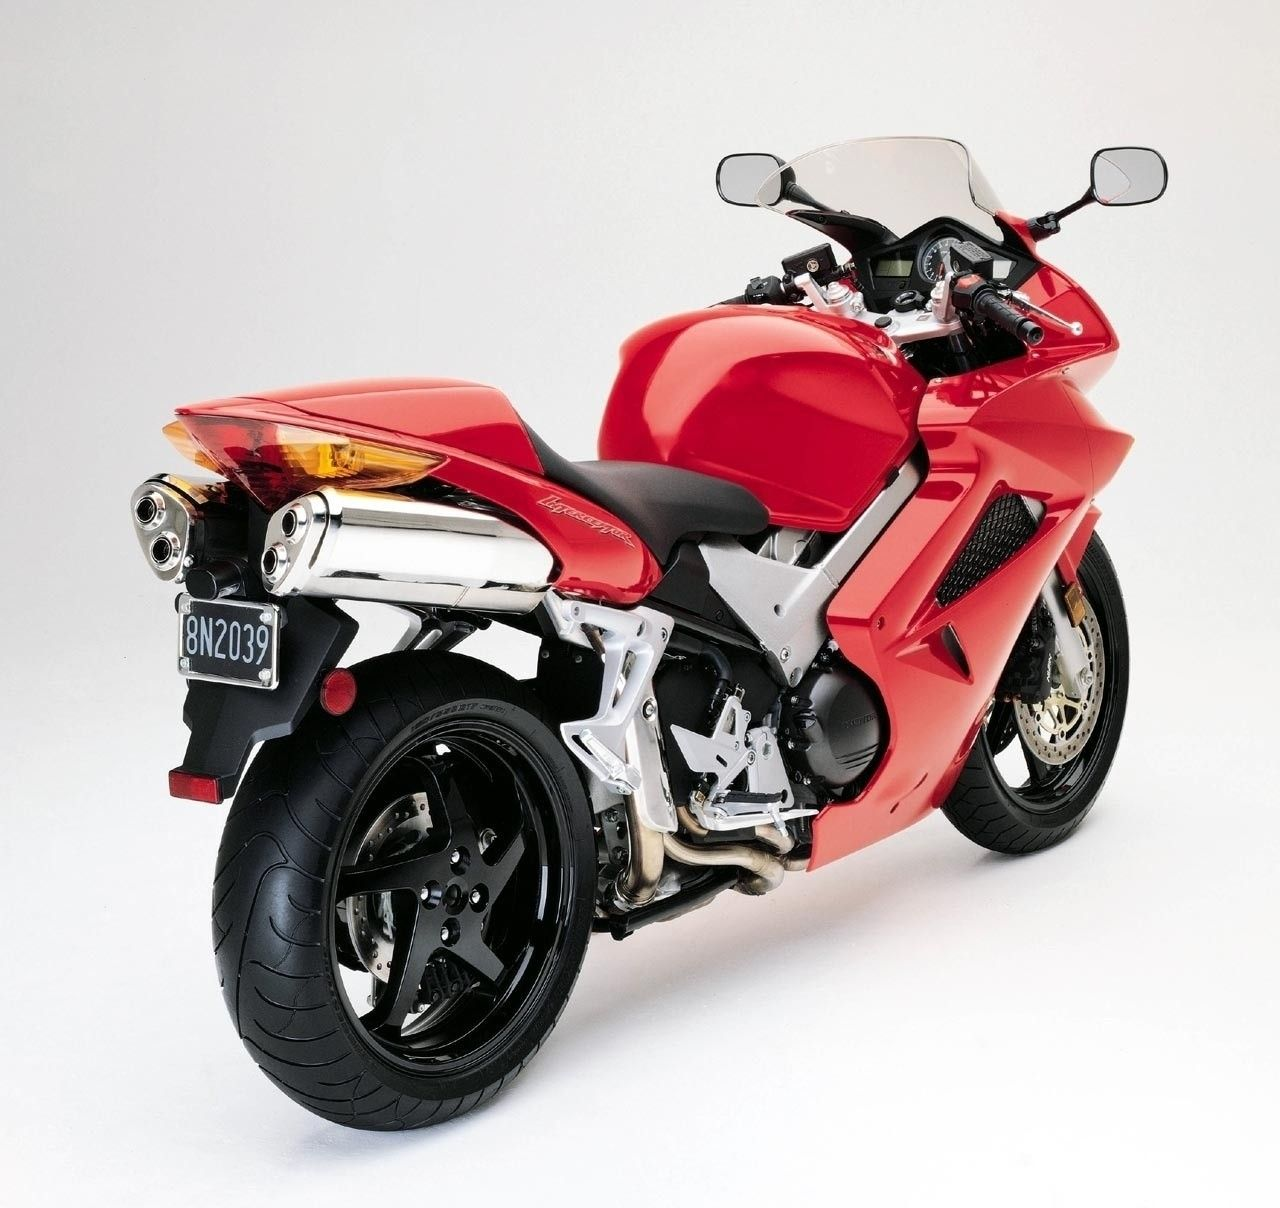 The 2019 Honda Vfr800F Review And Specs